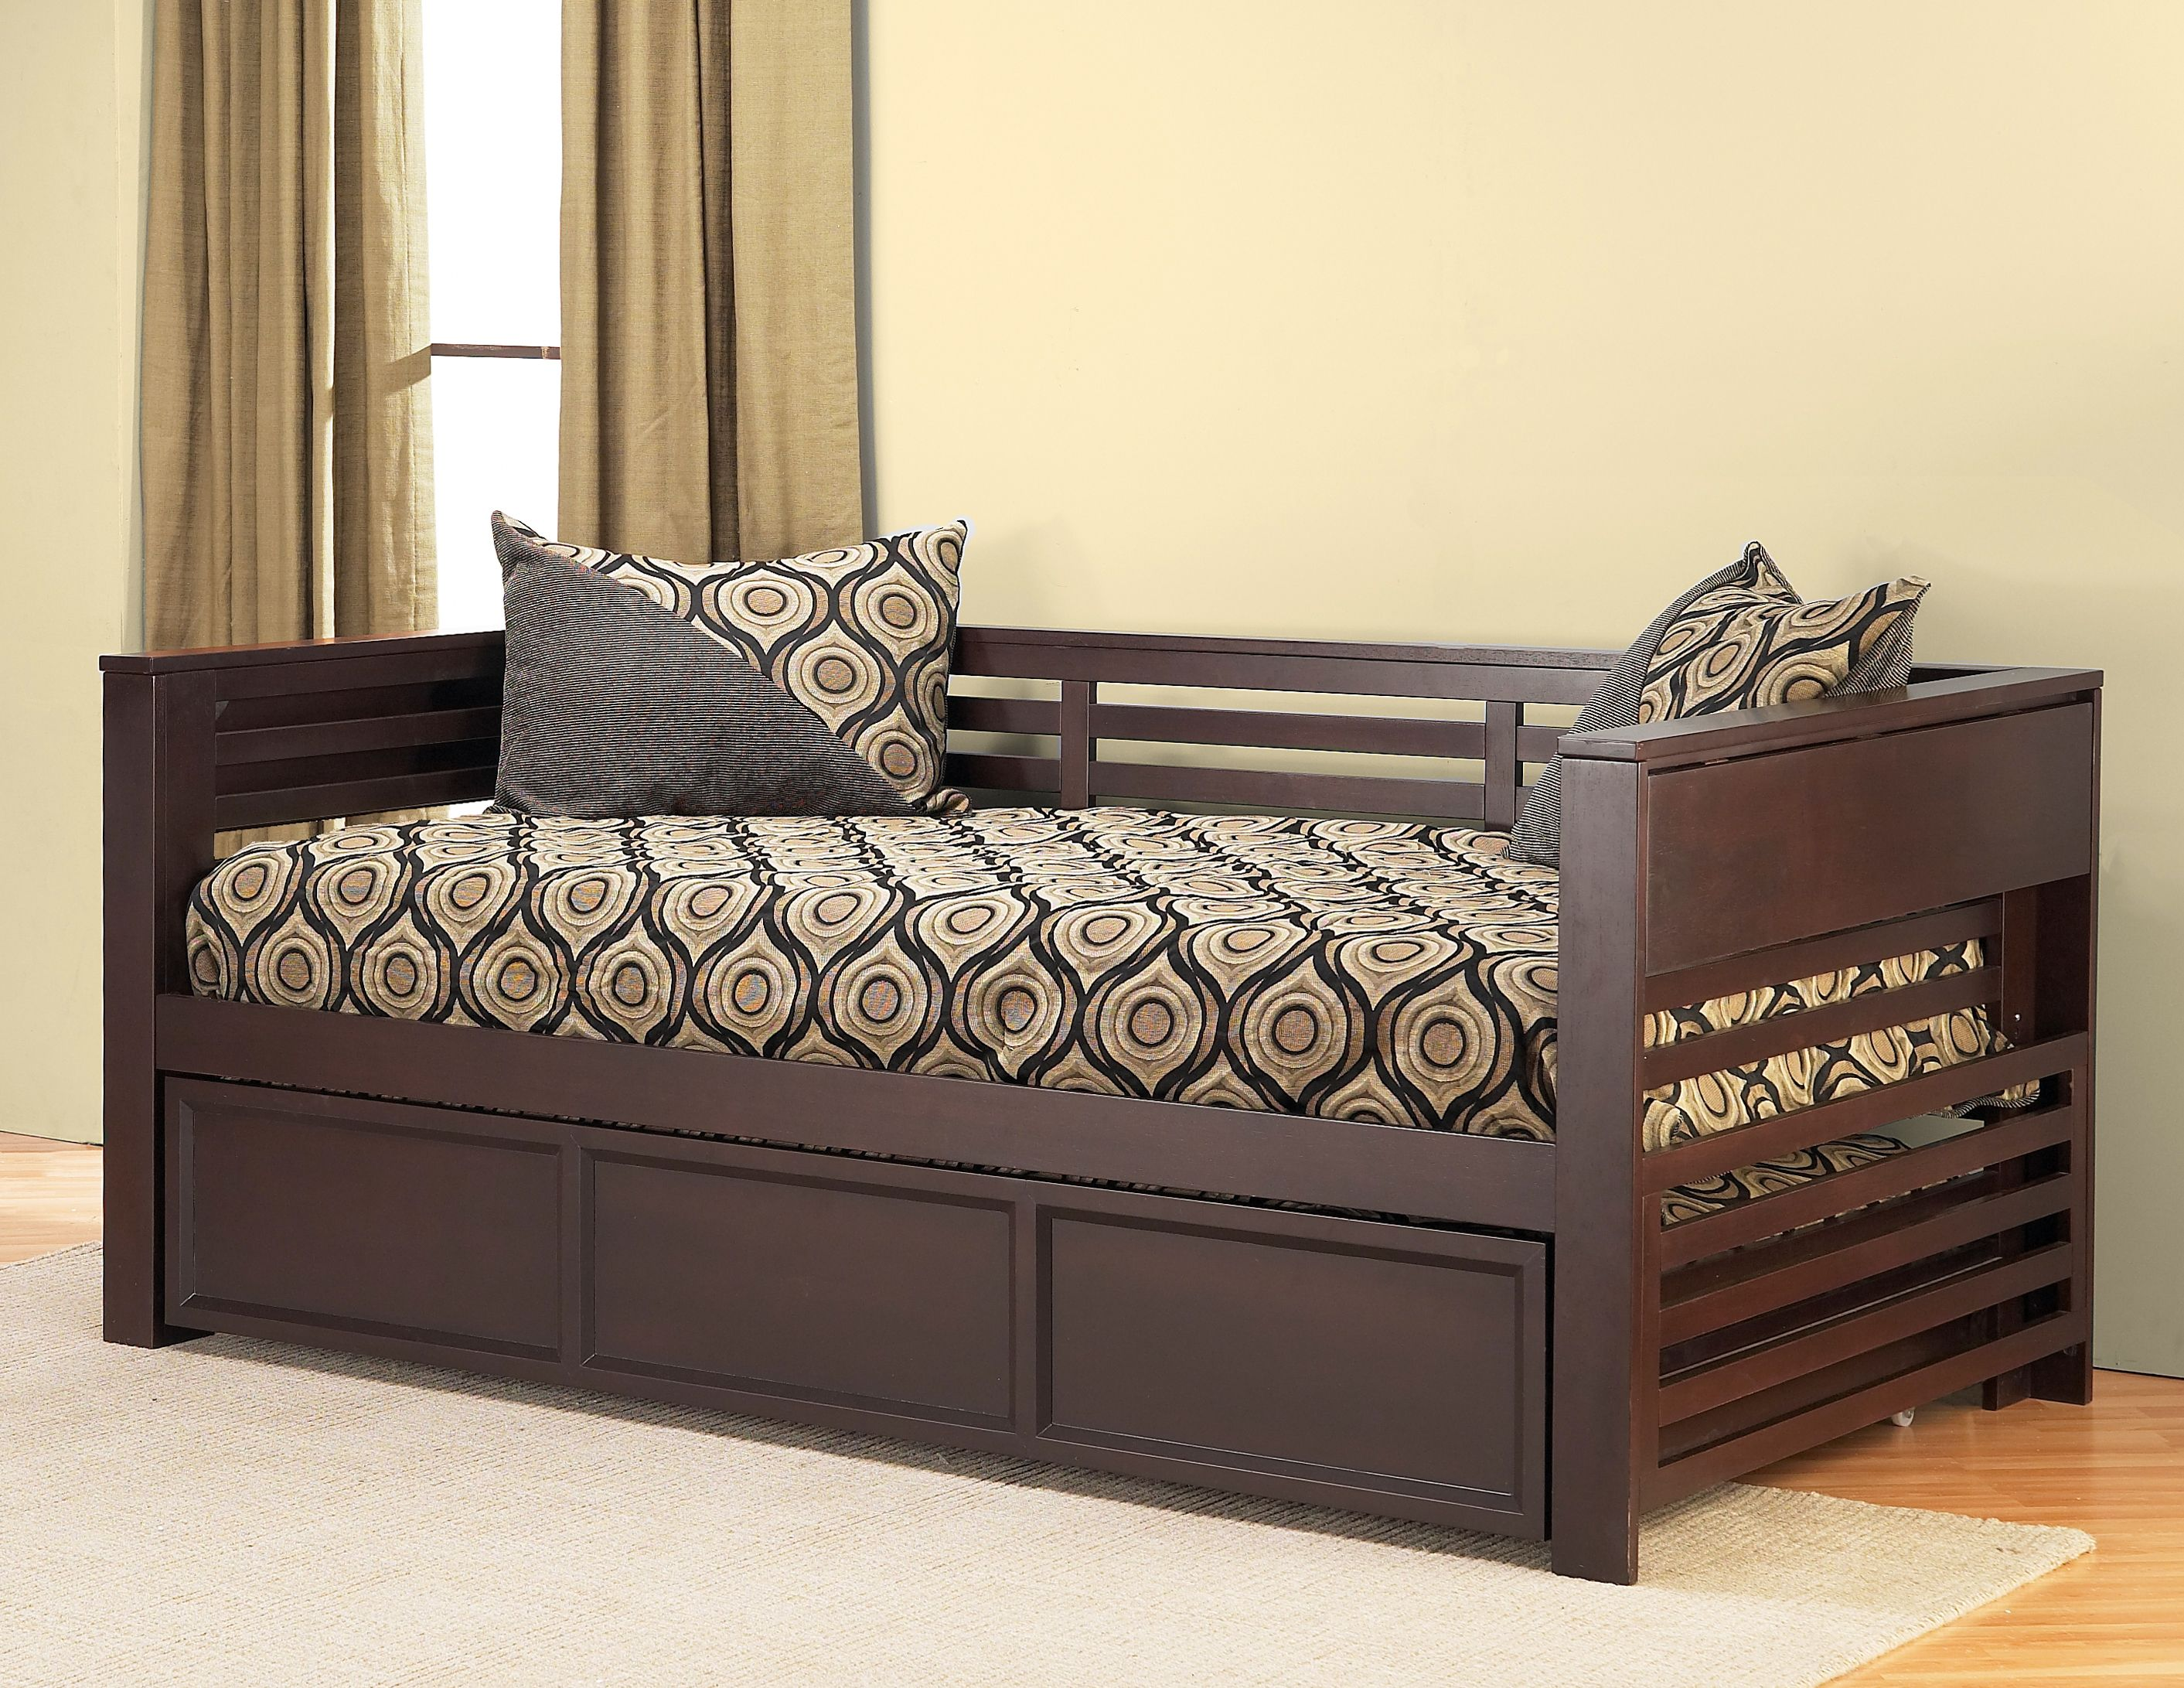 Alluring Daybed With Pop Up Trundle For Inspiring Bedroom